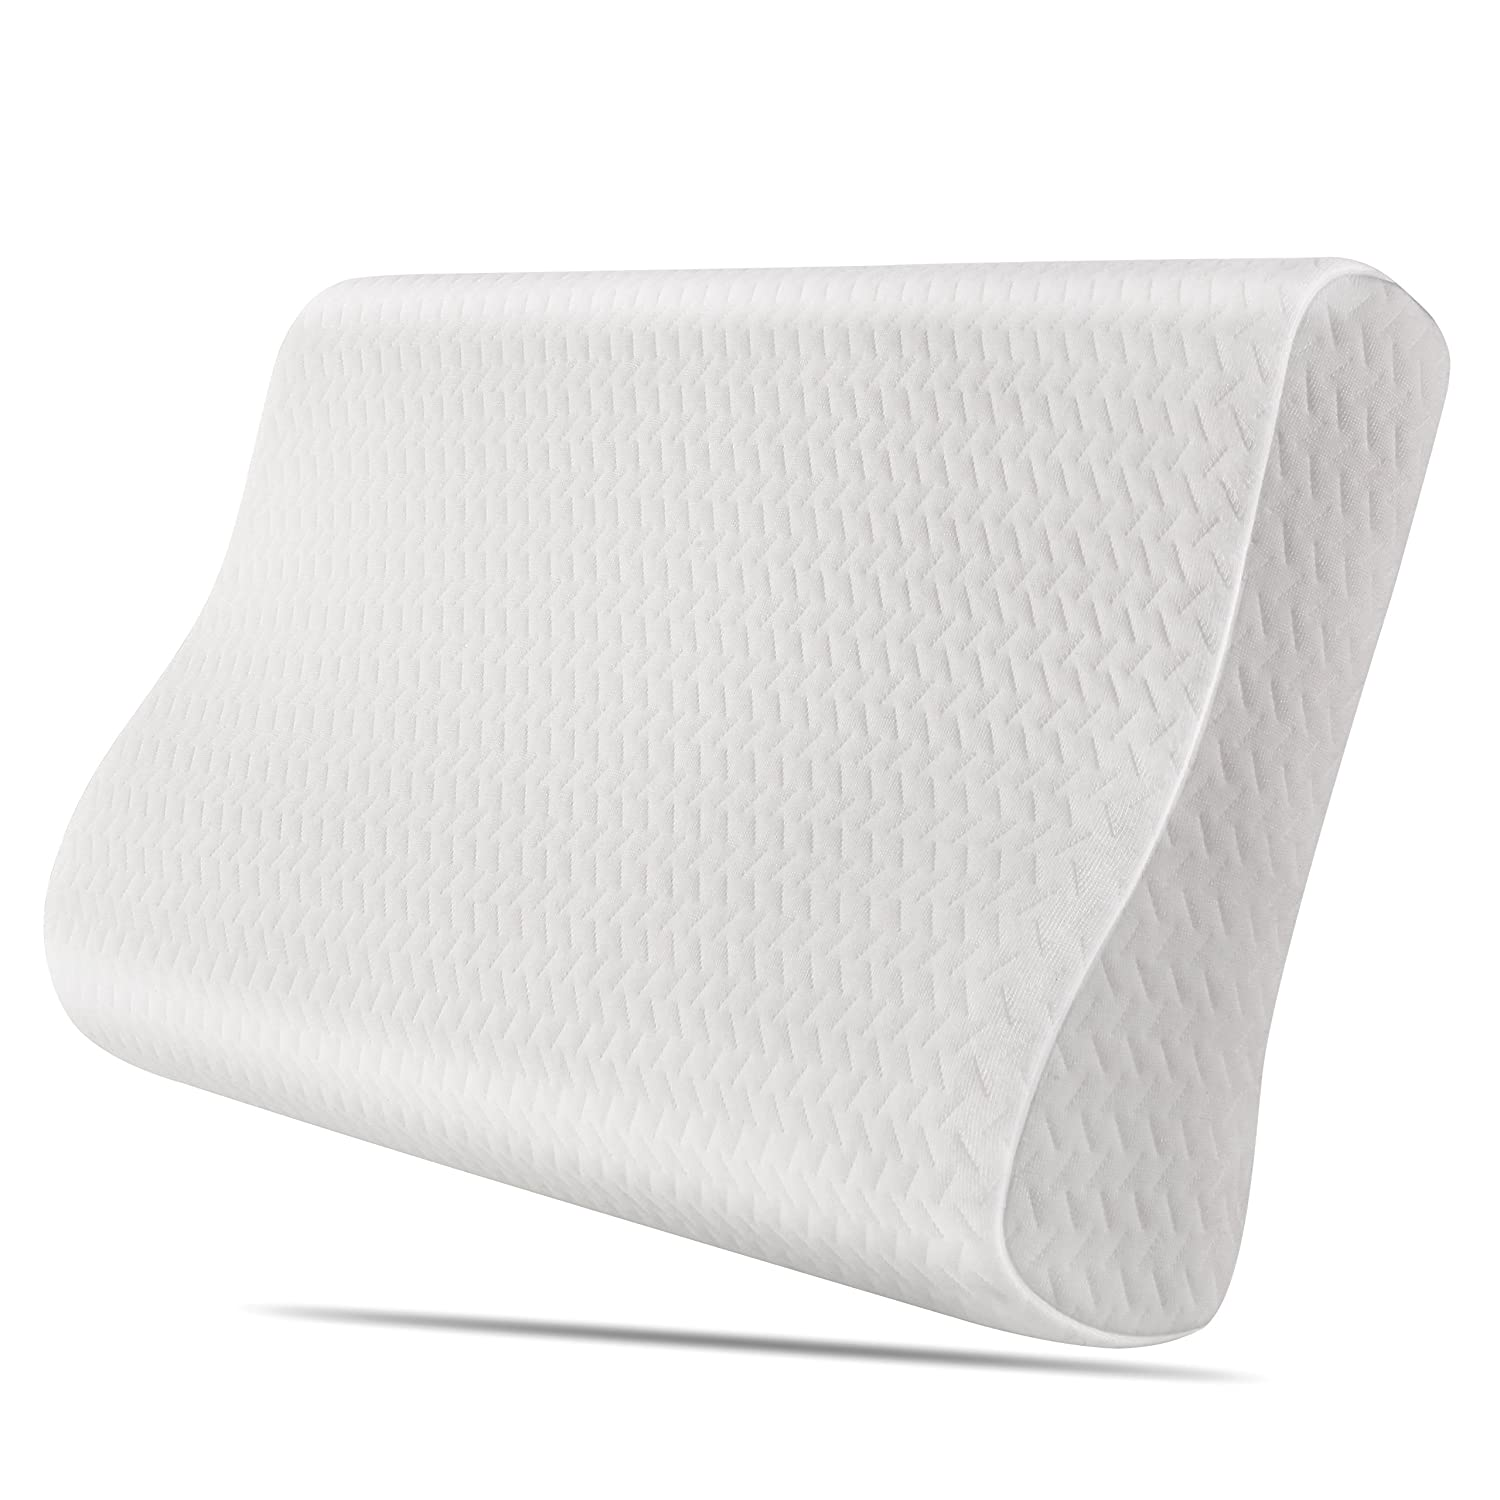 HOMFA Memory Foam Pillow Contour Orthopedic Neck Support Pillow with zipped Washable Cover 50*30*10cm White HOMFA Direct